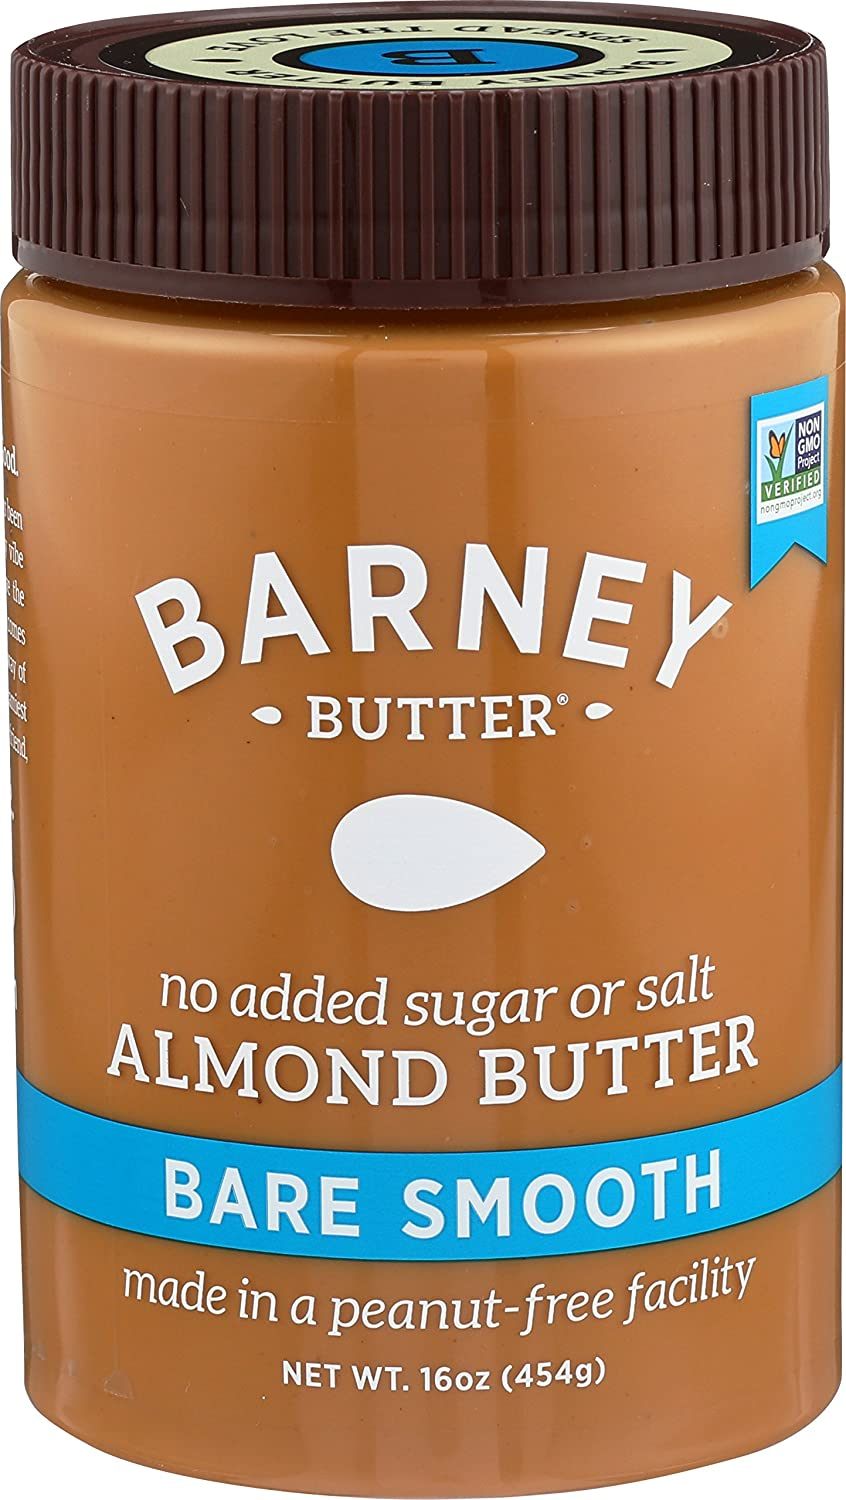 Barney Butter Almond Butter, Bare Smooth, 16 Ounce by Barney Butter